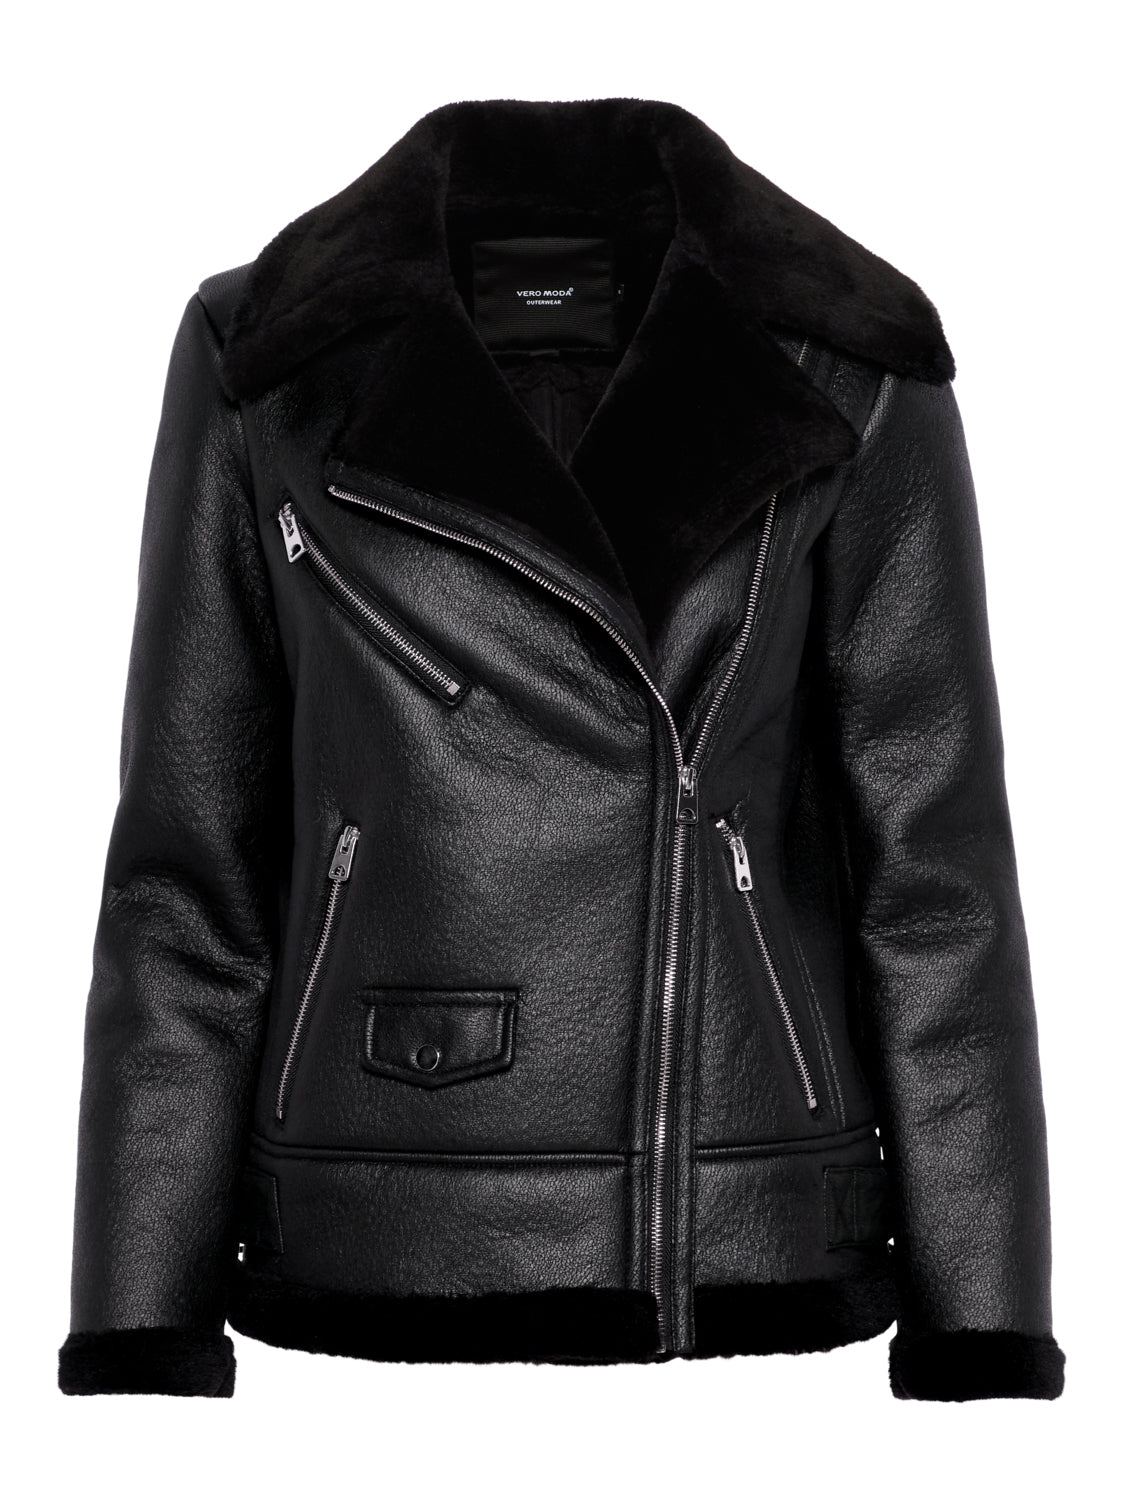 c1da1b7149ae9 Black Faux Shearling Aviator Jacket - Coveted Style